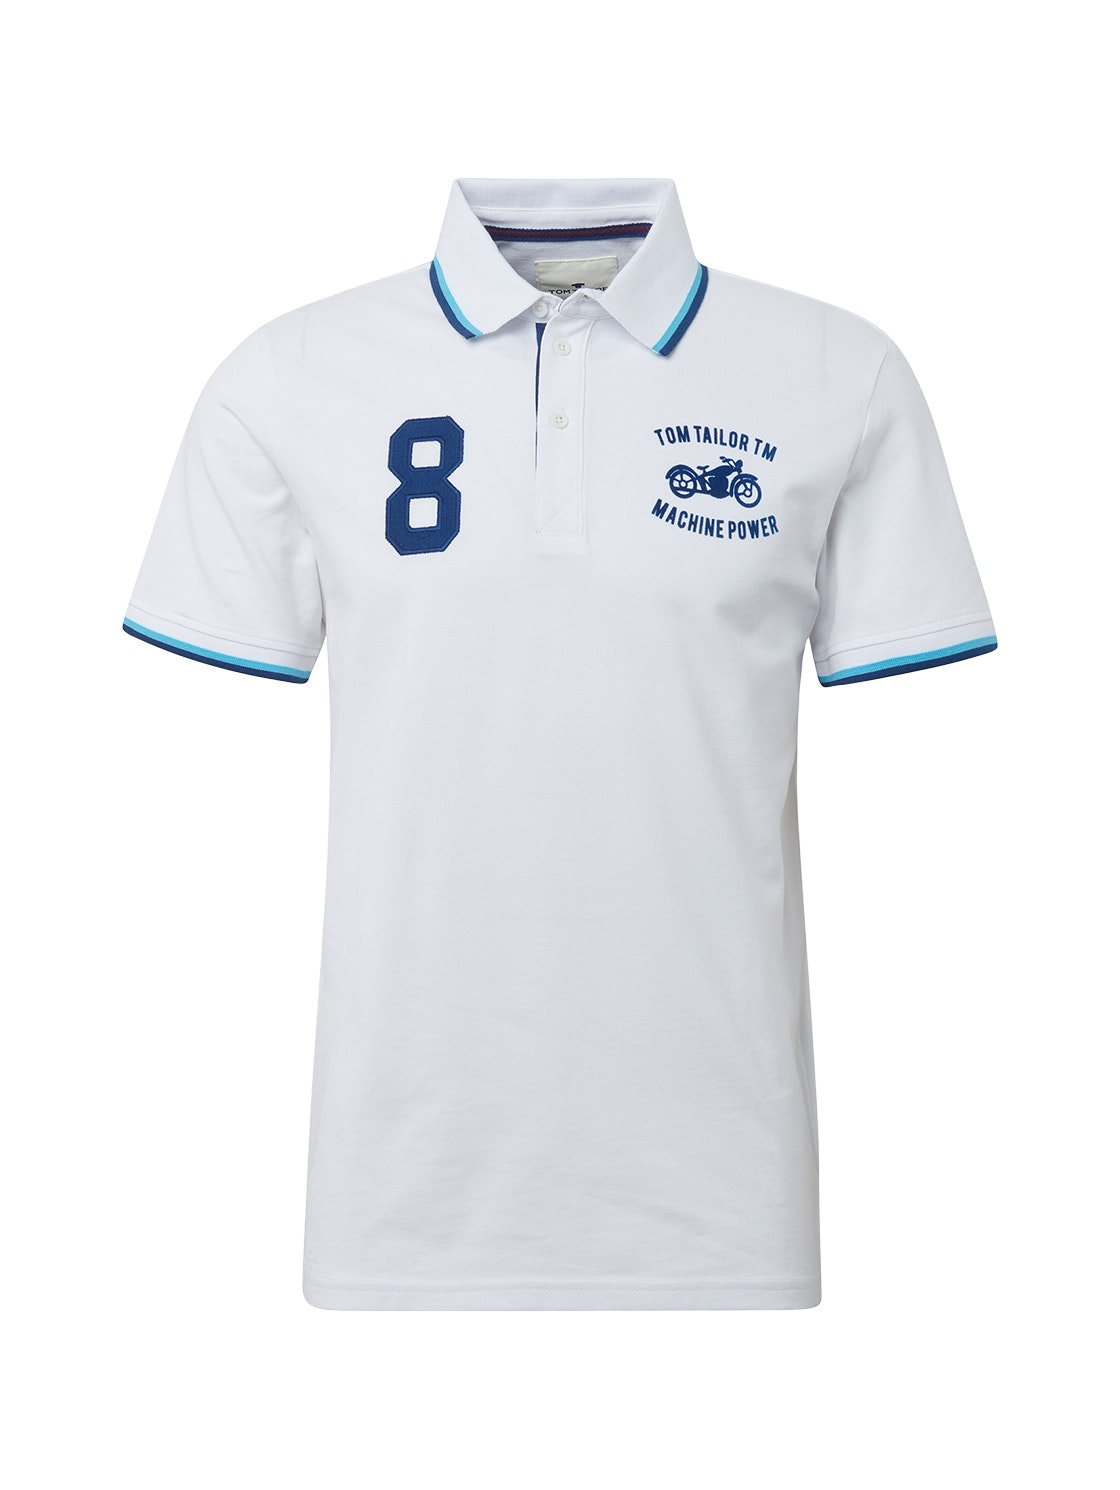 decorated polo with tippings, White                         White